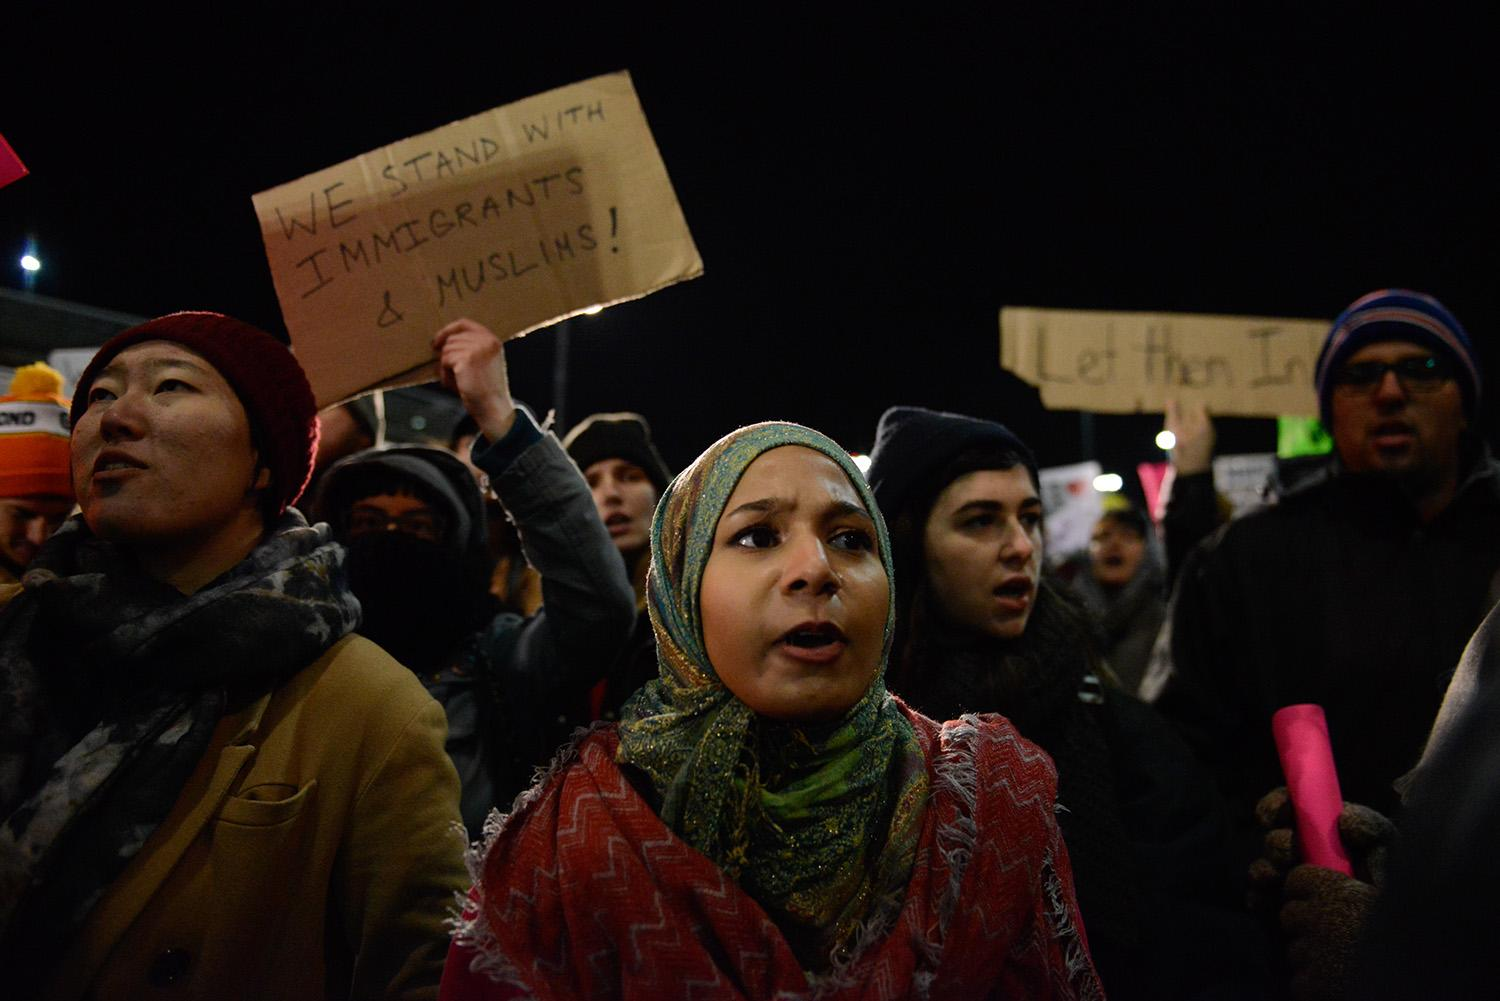 <p>Protestors rally during a demonstration against the new immigration ban issued by President Donald Trump at John F. Kennedy International Airport on January 28, 2017 in New York City. (Photo: Stephanie Keith/Getty Images) </p>